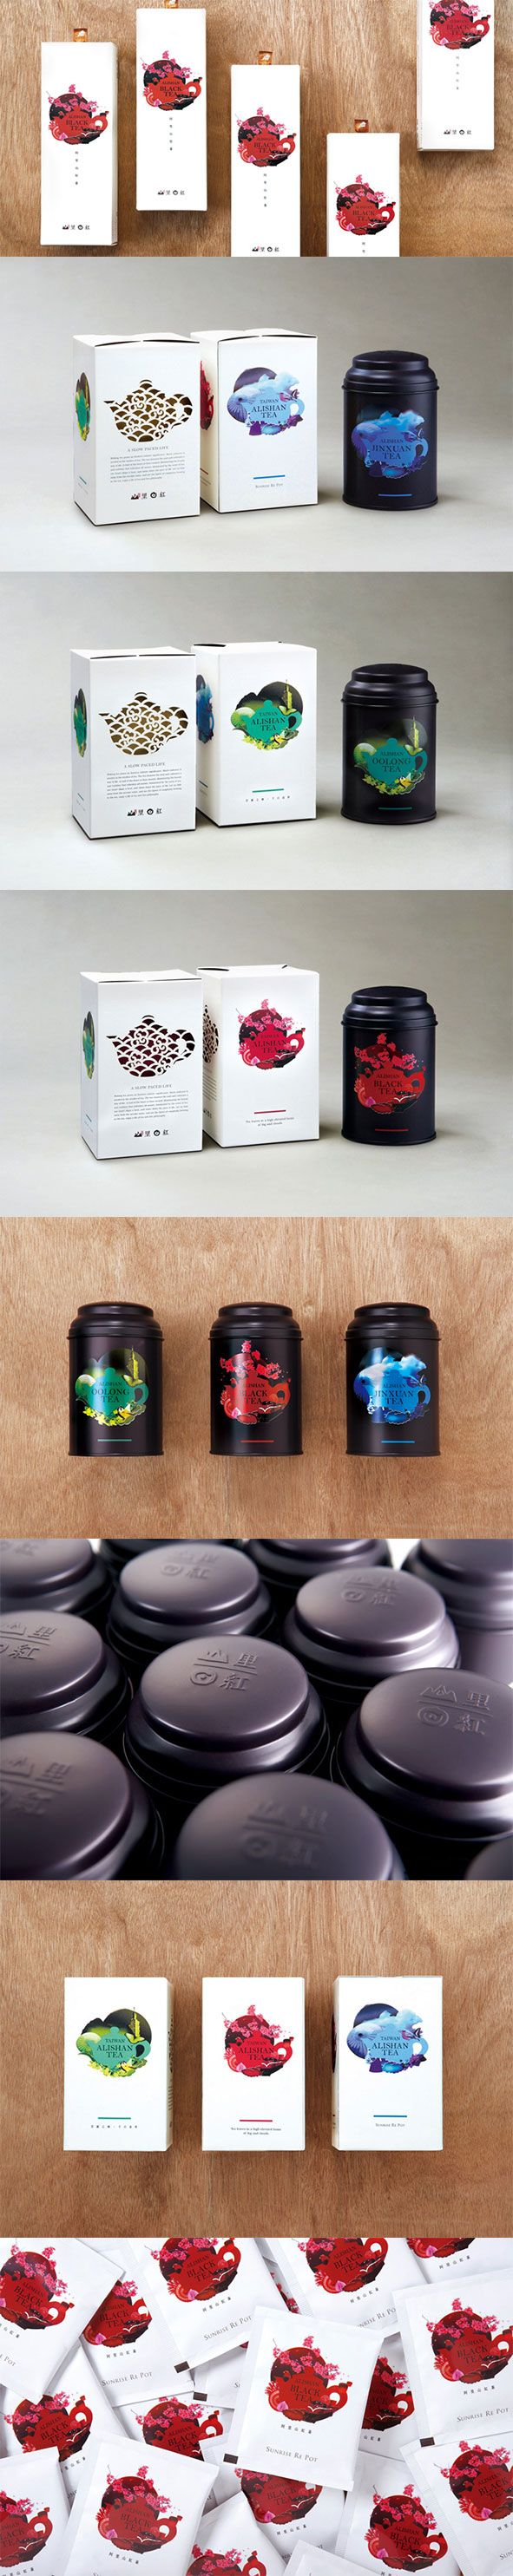 Alishan Tea via The Dieline great #tea #packaging PD - nice colour to make the black pop